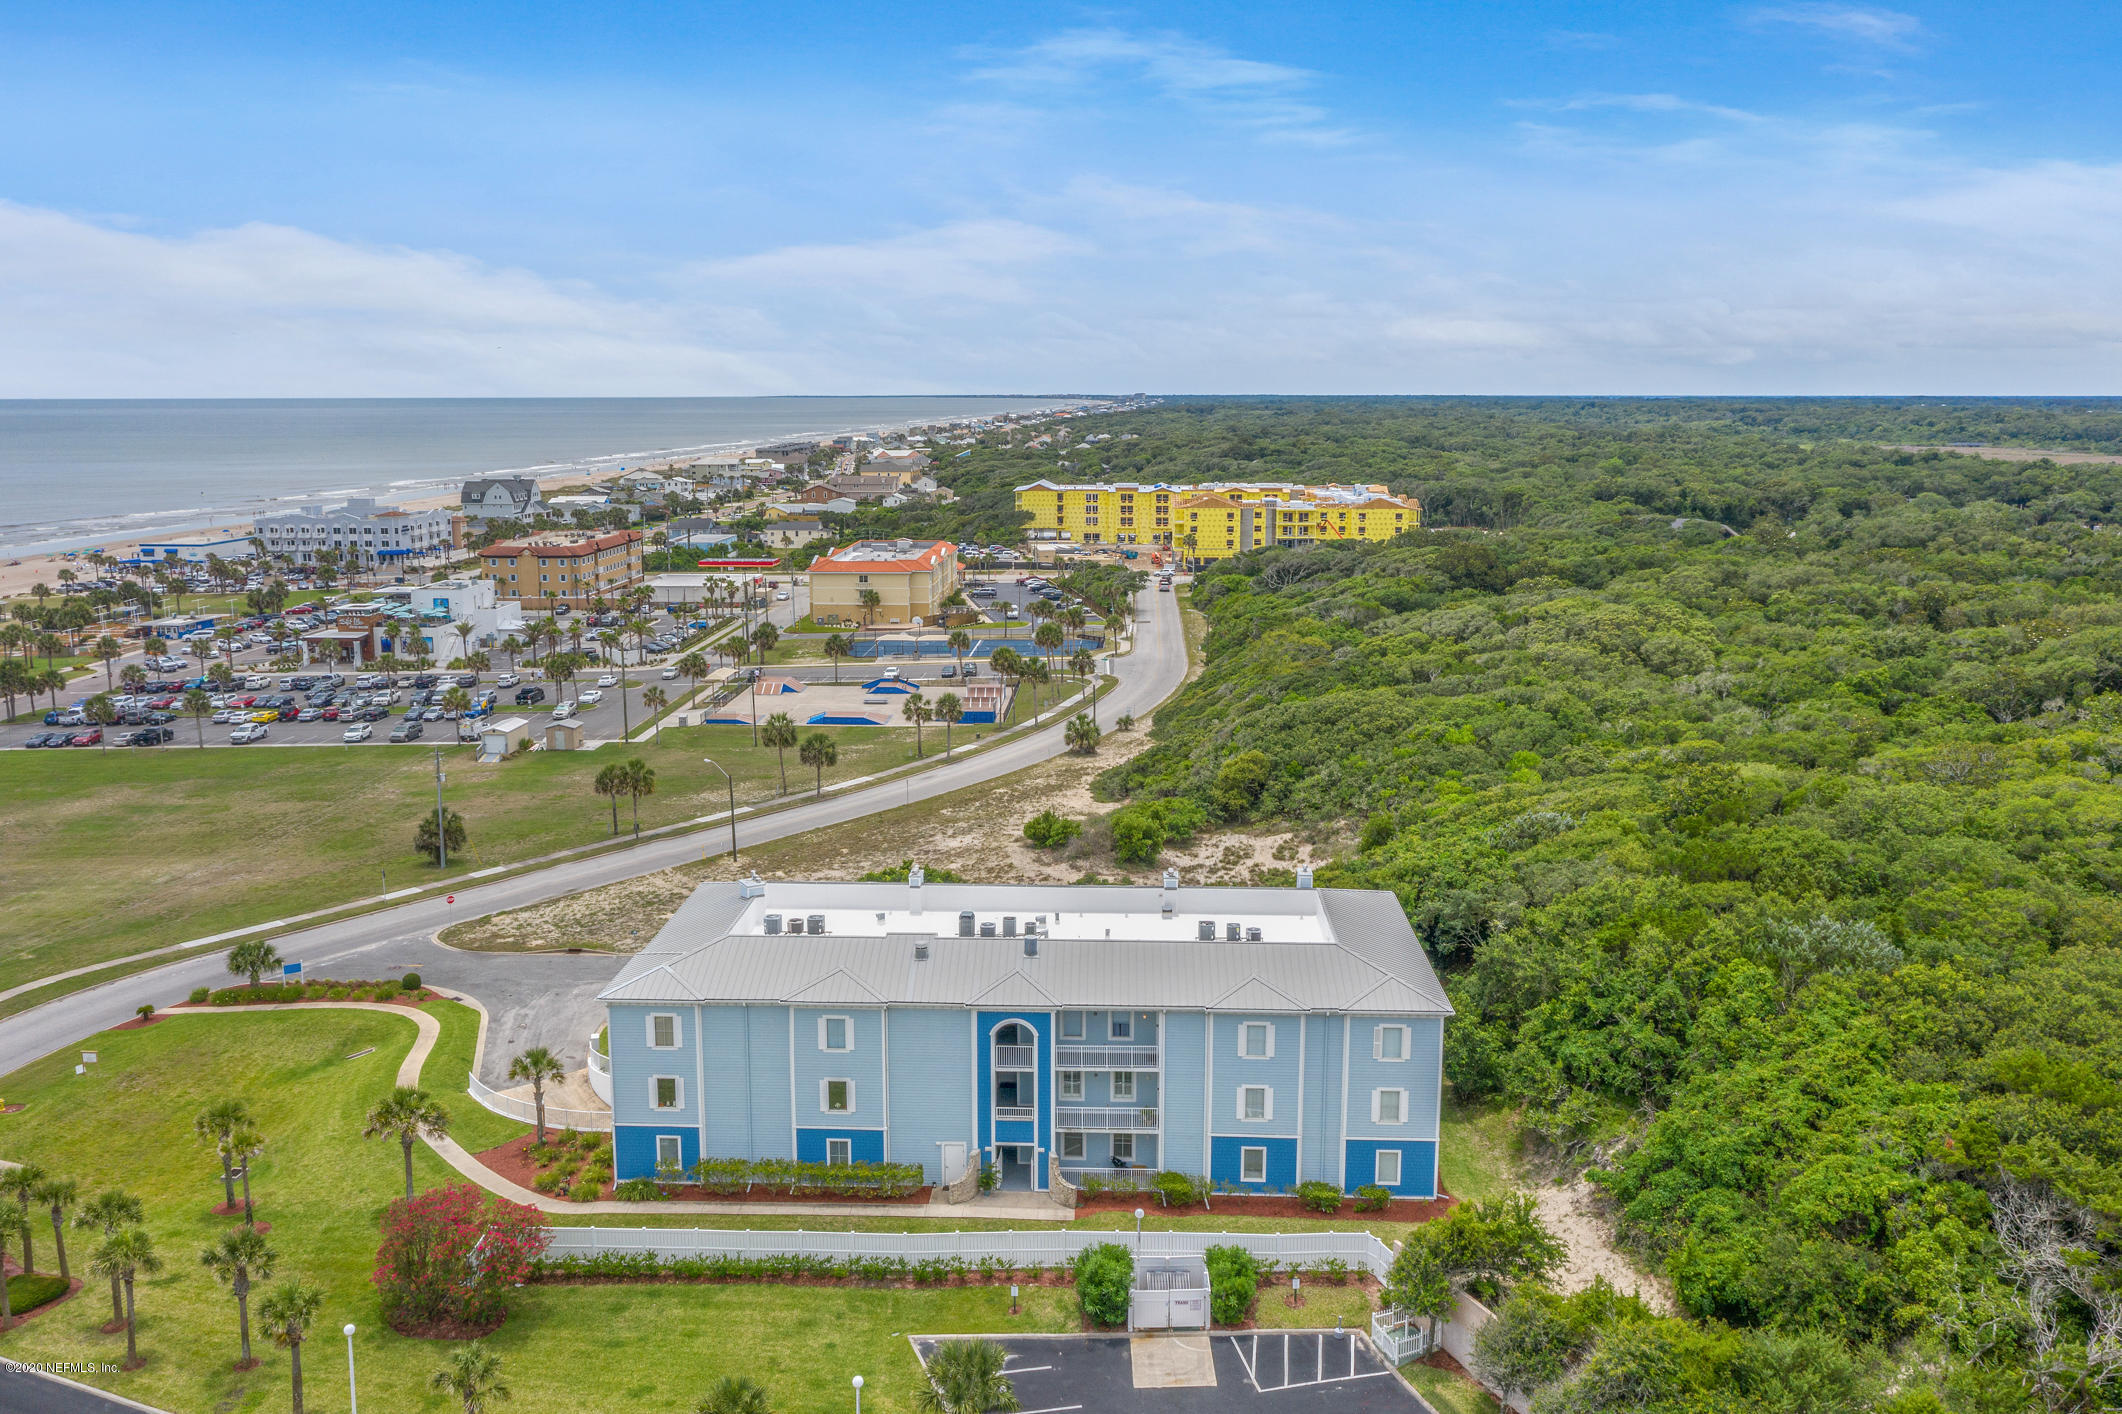 2705 DOLPHIN, FERNANDINA BEACH, FLORIDA 32034, 3 Bedrooms Bedrooms, ,3 BathroomsBathrooms,Residential,For sale,DOLPHIN,1058008